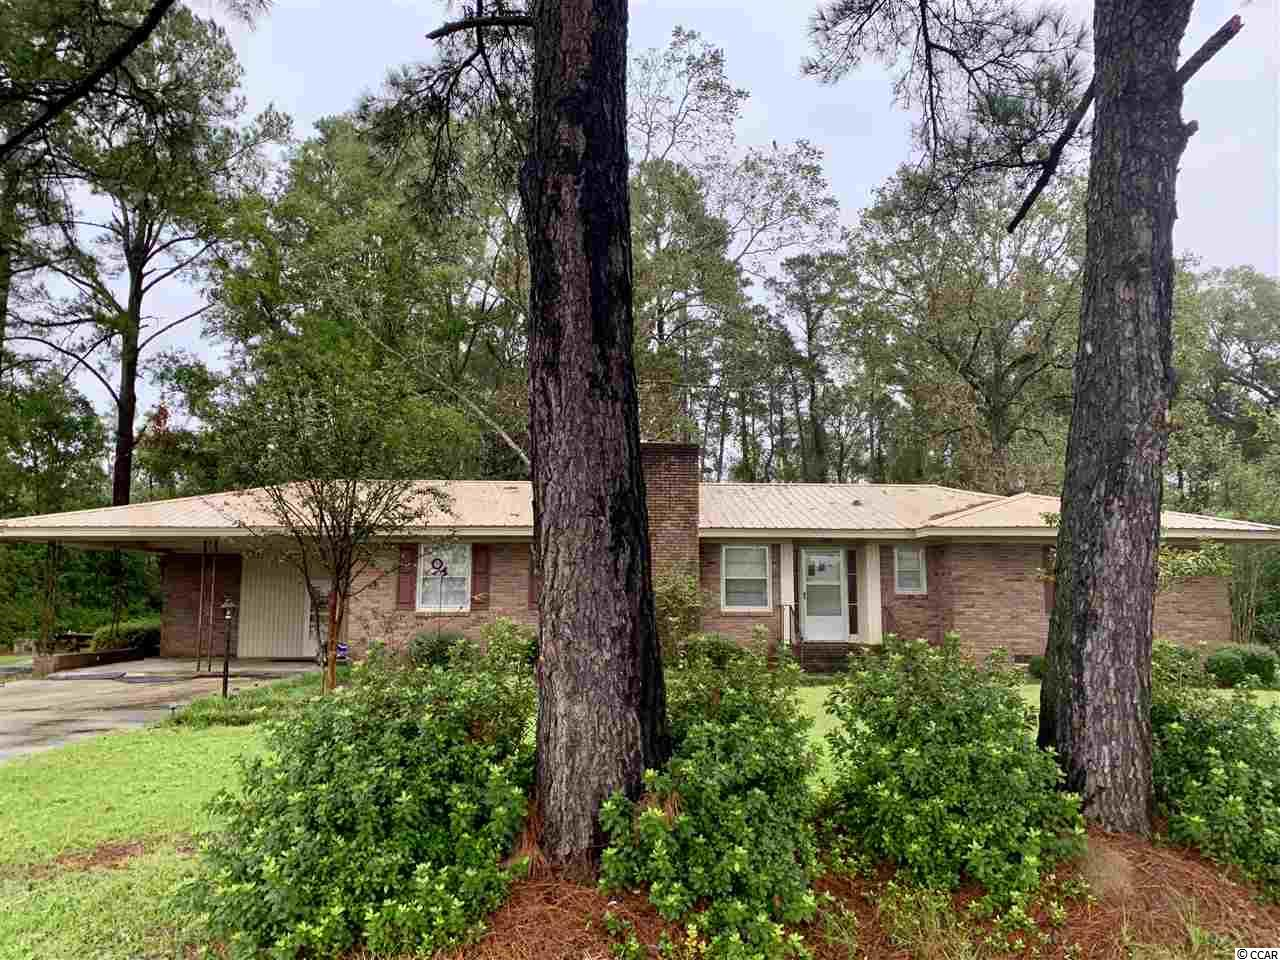 WOW! This is a RARE find on Highway 501 W in Conway! This lovely all brick home is minutes from all the shops and grocery stores in town! This home has been well maintained, and has beautiful mature pines and shrubbery. This 3 bed/2 bath has a large floor plan, and gives anyone true comfort in the home. There is an attached two-car carport, and detached two car garage behind the home. Home is sold as-is due to owner never occupied. Currently is used as a rental home. Perfect for primary residence, rental, or business. Home sits on a comfortable 1.6 acre lot.